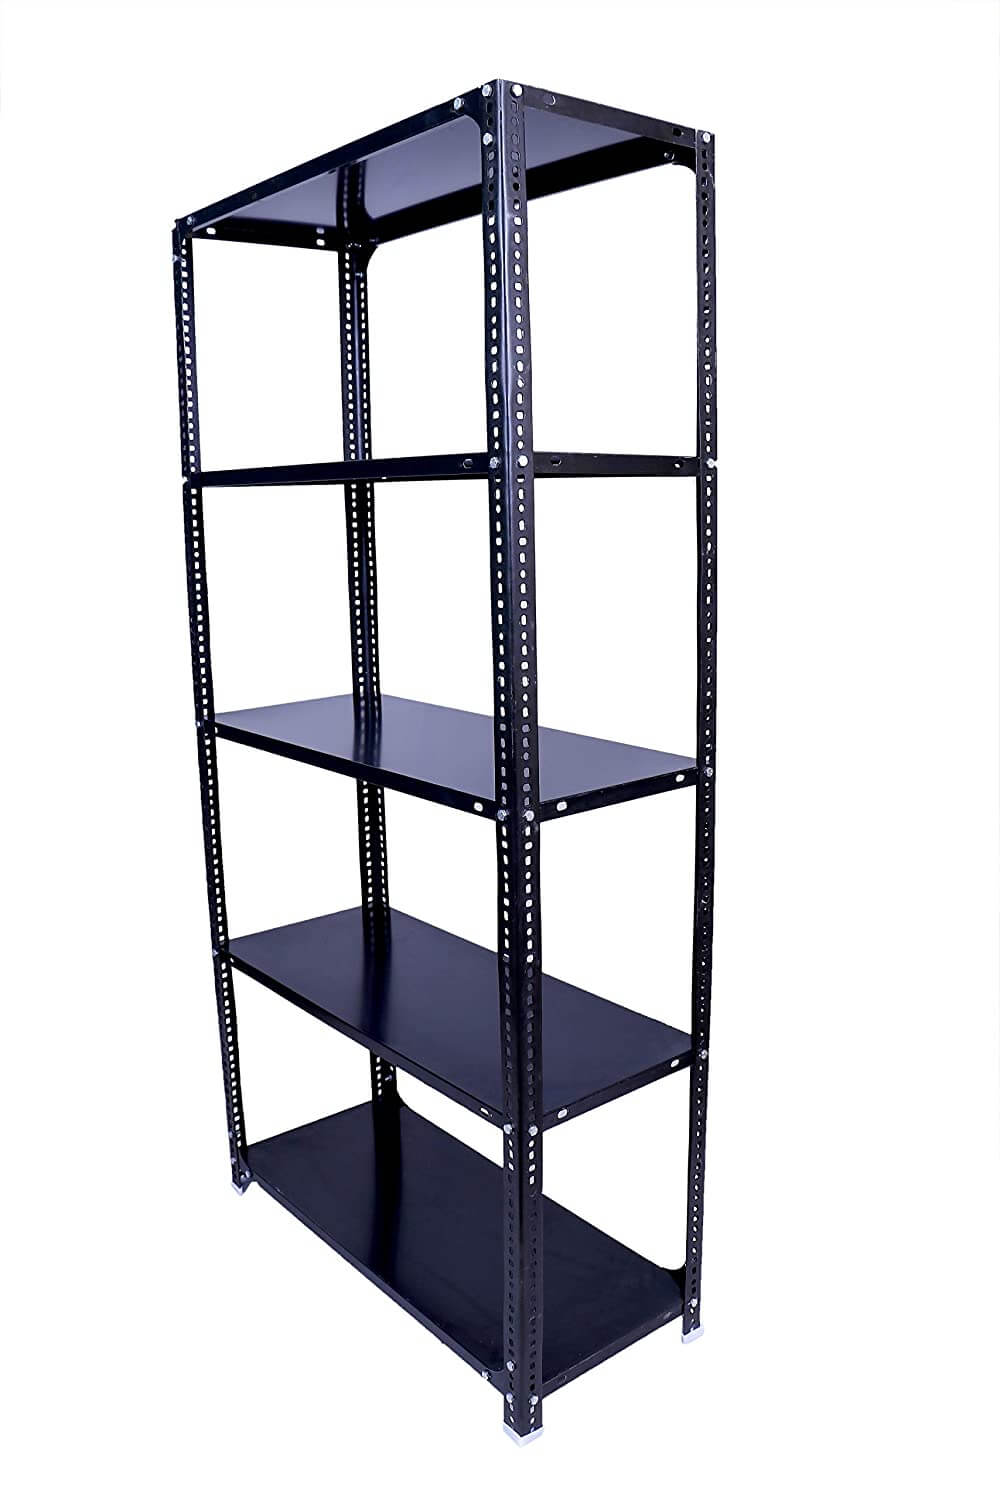 Slotted Angle Racks In Ahmedabad